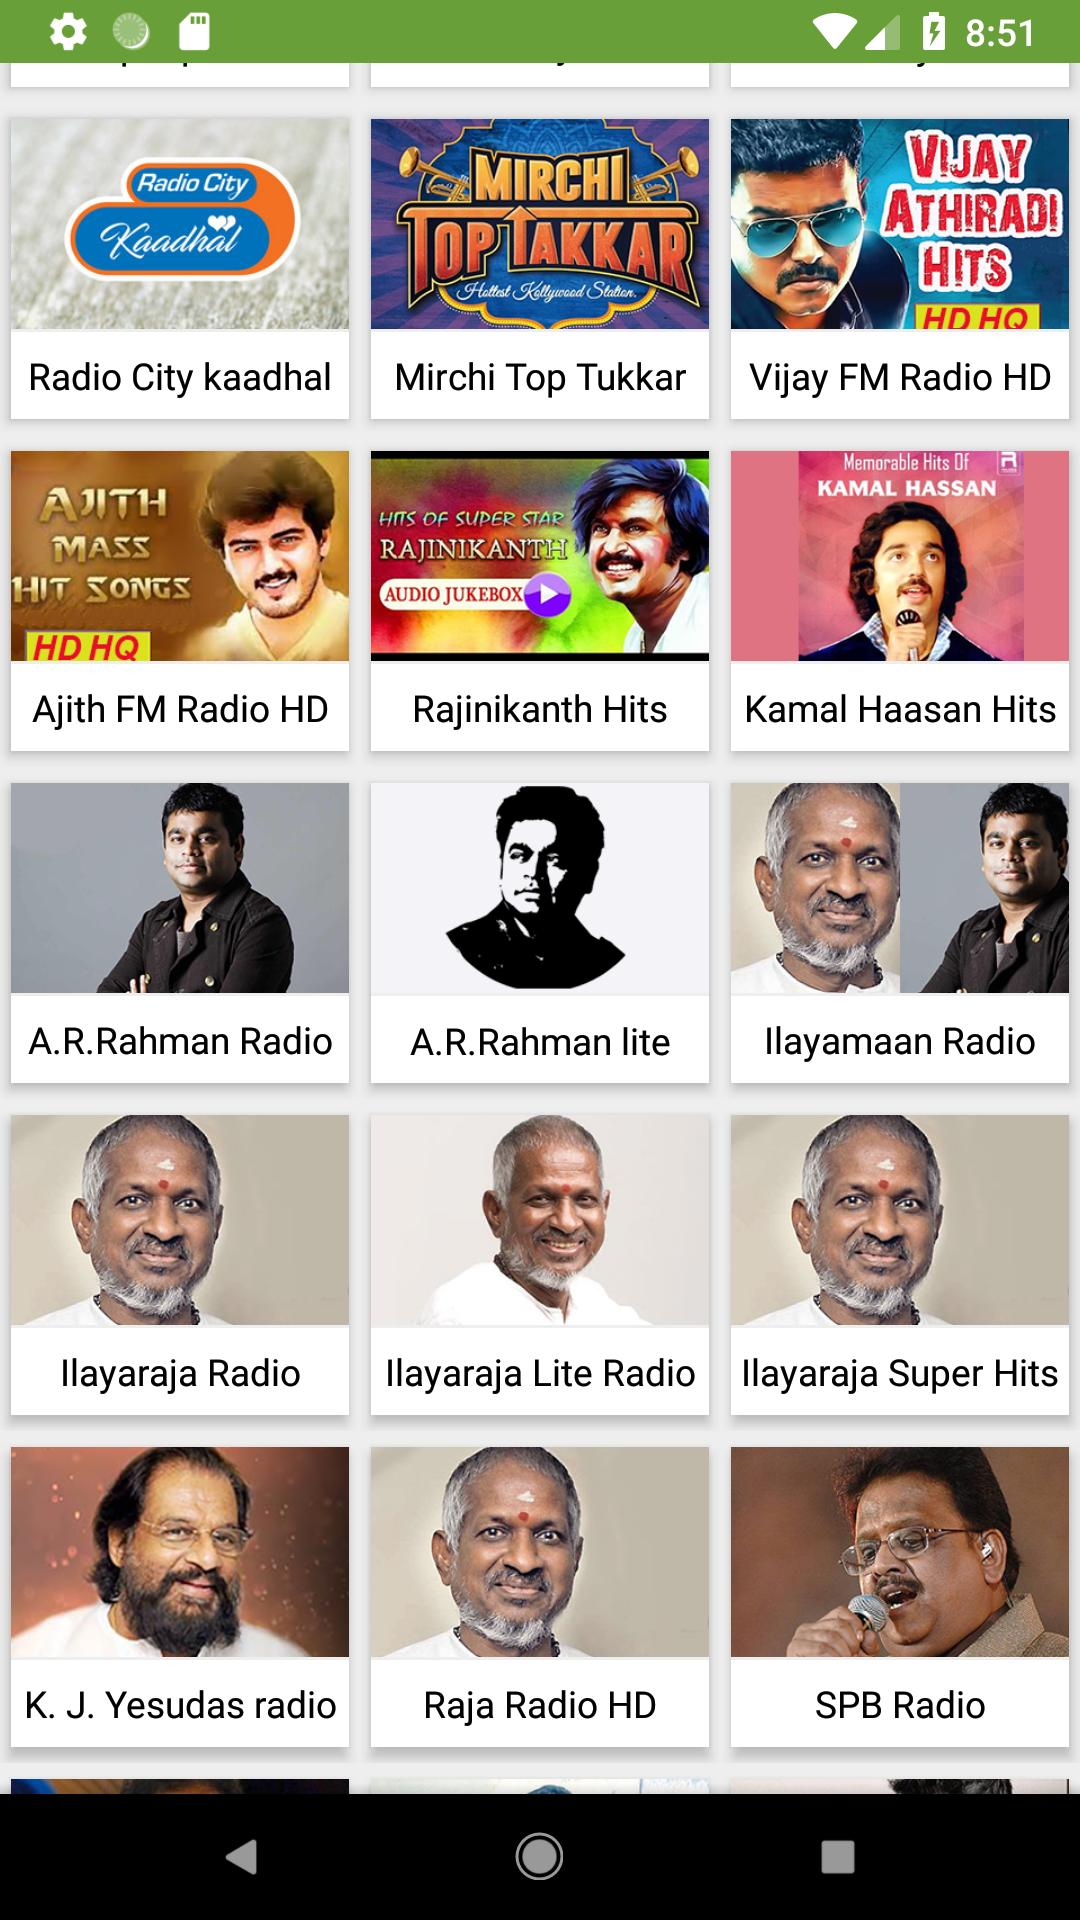 Tamil Fm Radio Hd Online tamil songs for Android - APK Download